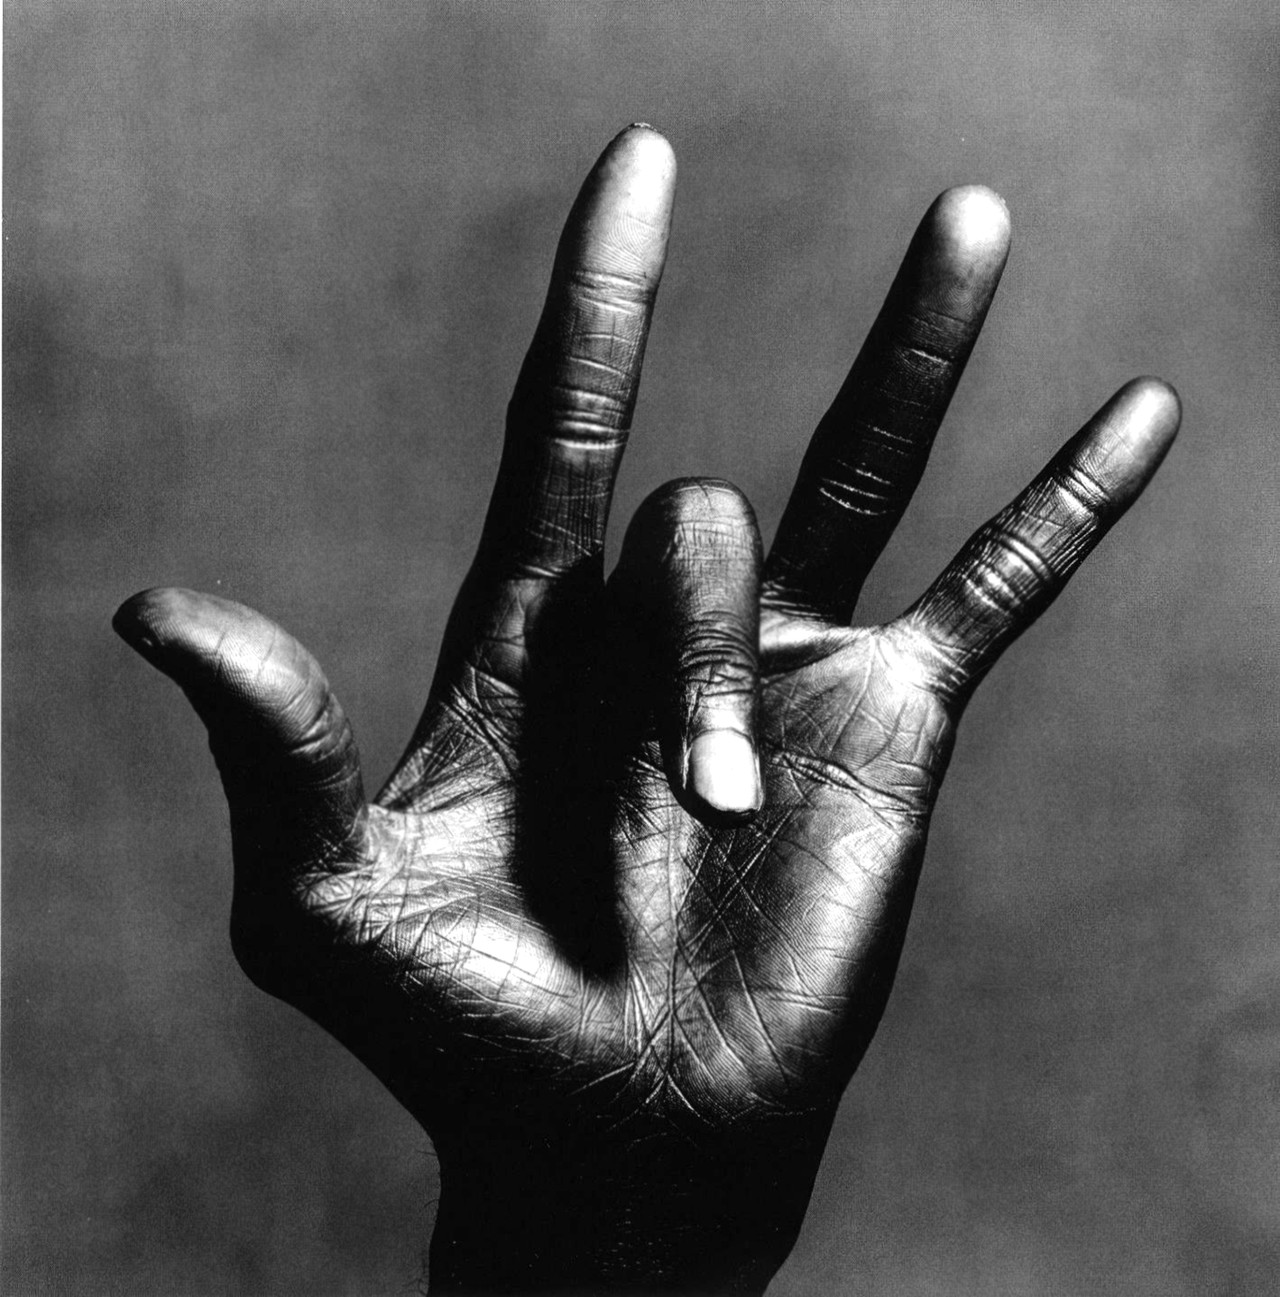 """The Hand of Miles Davis"", Irving Penn, New York, 1986"